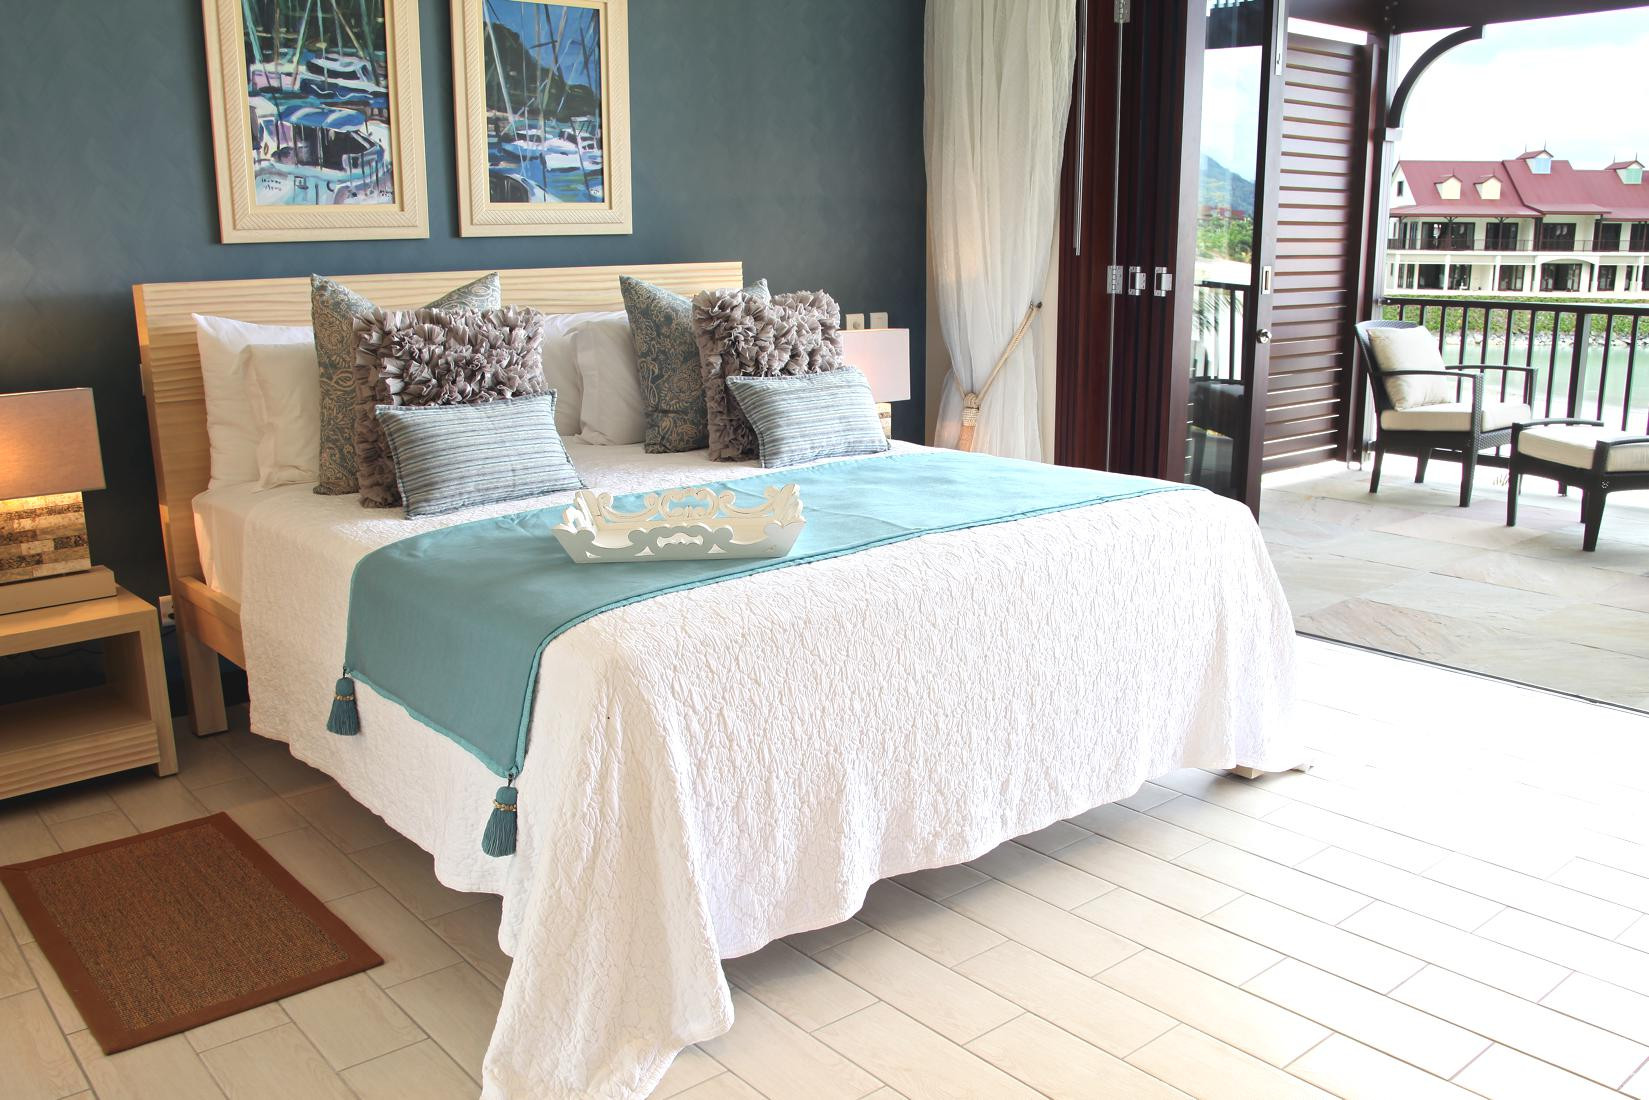 Maison Bedroom Furniture Luxury Maisons For Sale In The Seychelles Eden Island